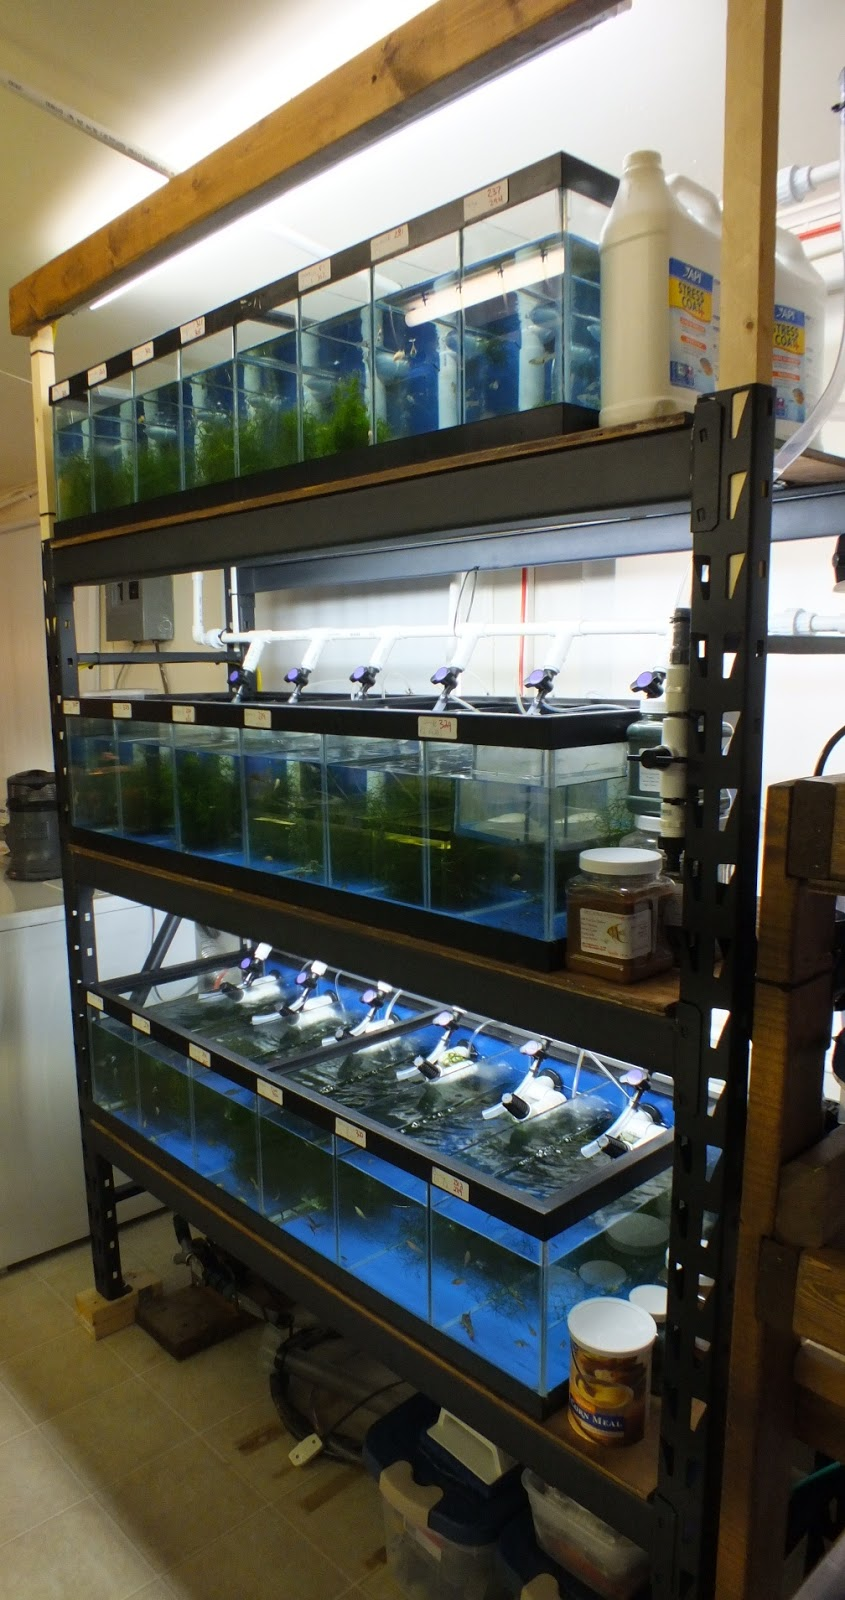 Breeding Rack Fully Automated For Water Change And Single Point Filtration